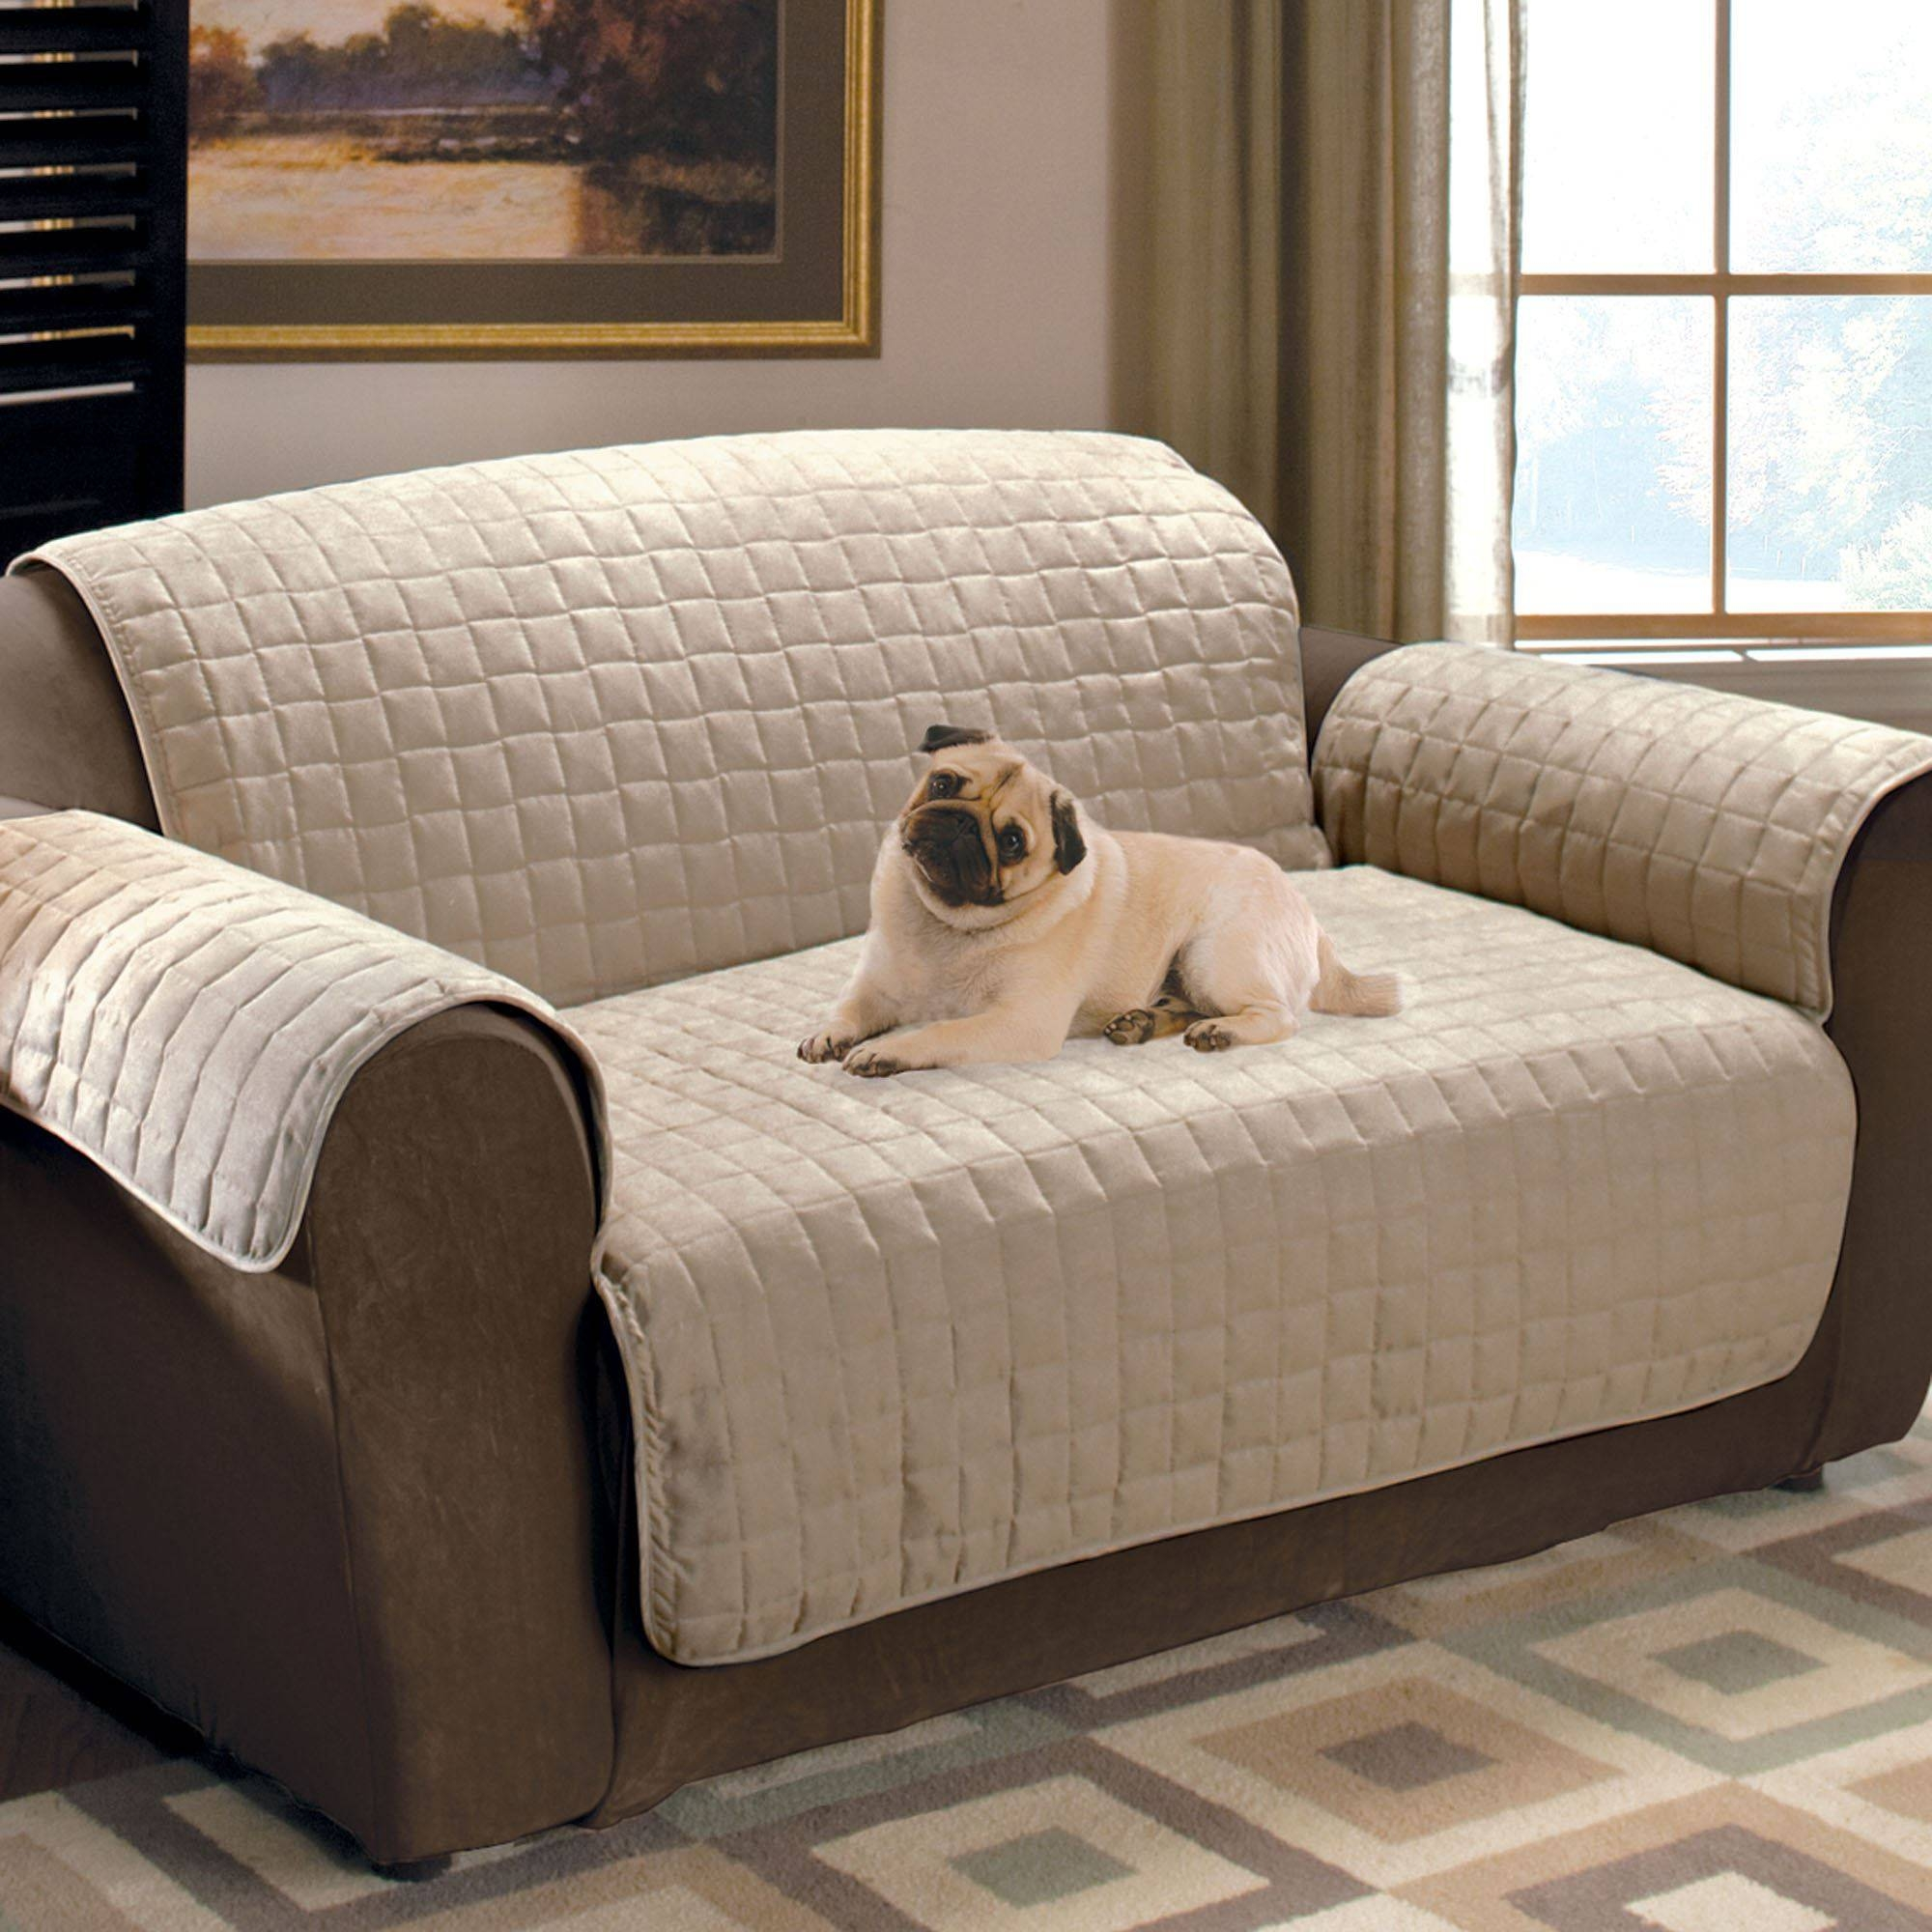 Faux Suede Pet Furniture Covers For Sofas, Loveseats, And Chairs Pertaining To Sofa And Chair Covers (View 7 of 30)